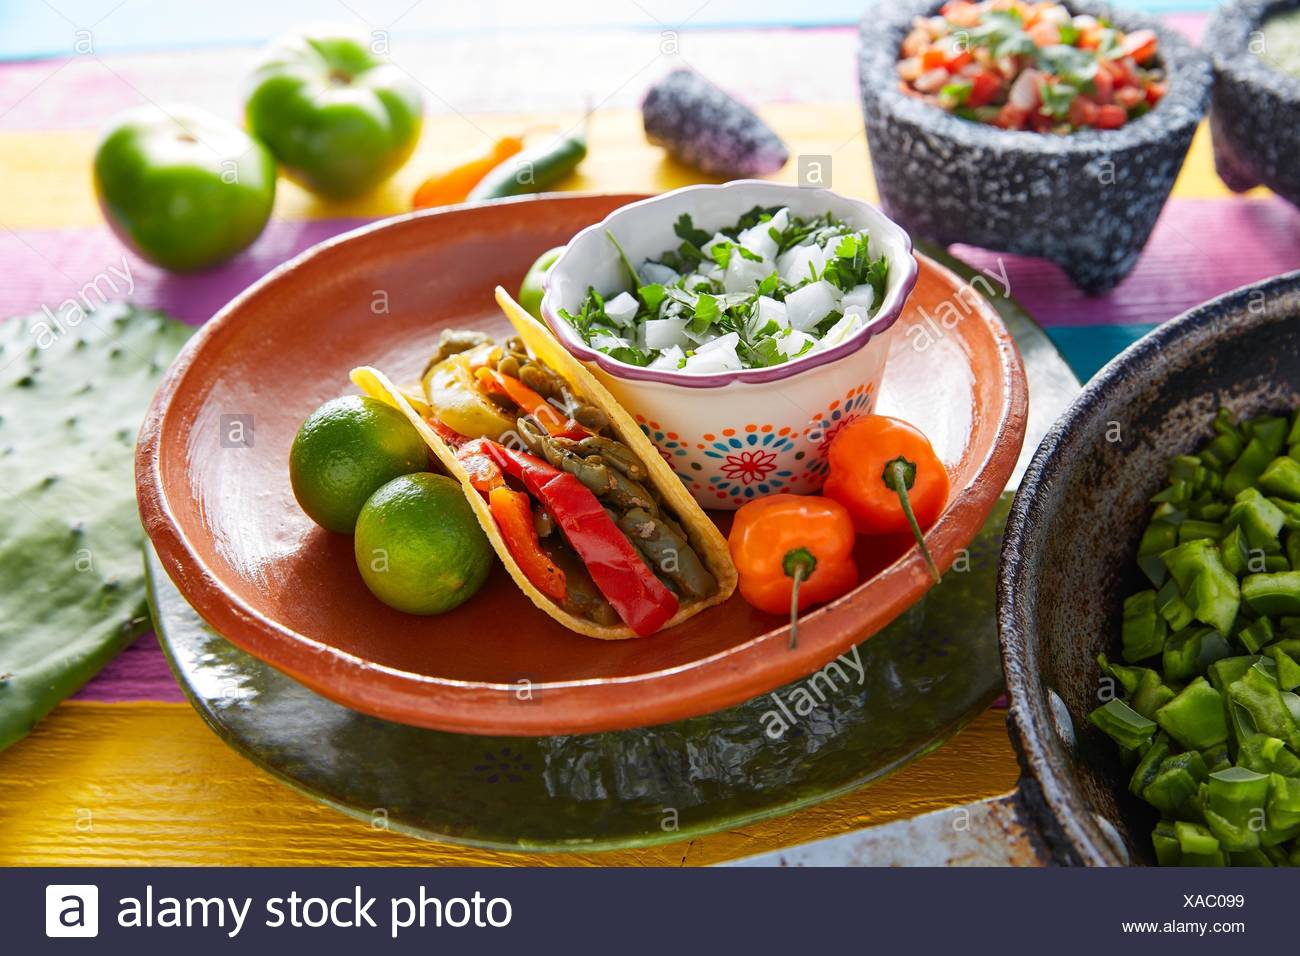 Nopal taco mexican food with chili pepper and ingredients on colorful table. Stock Photo